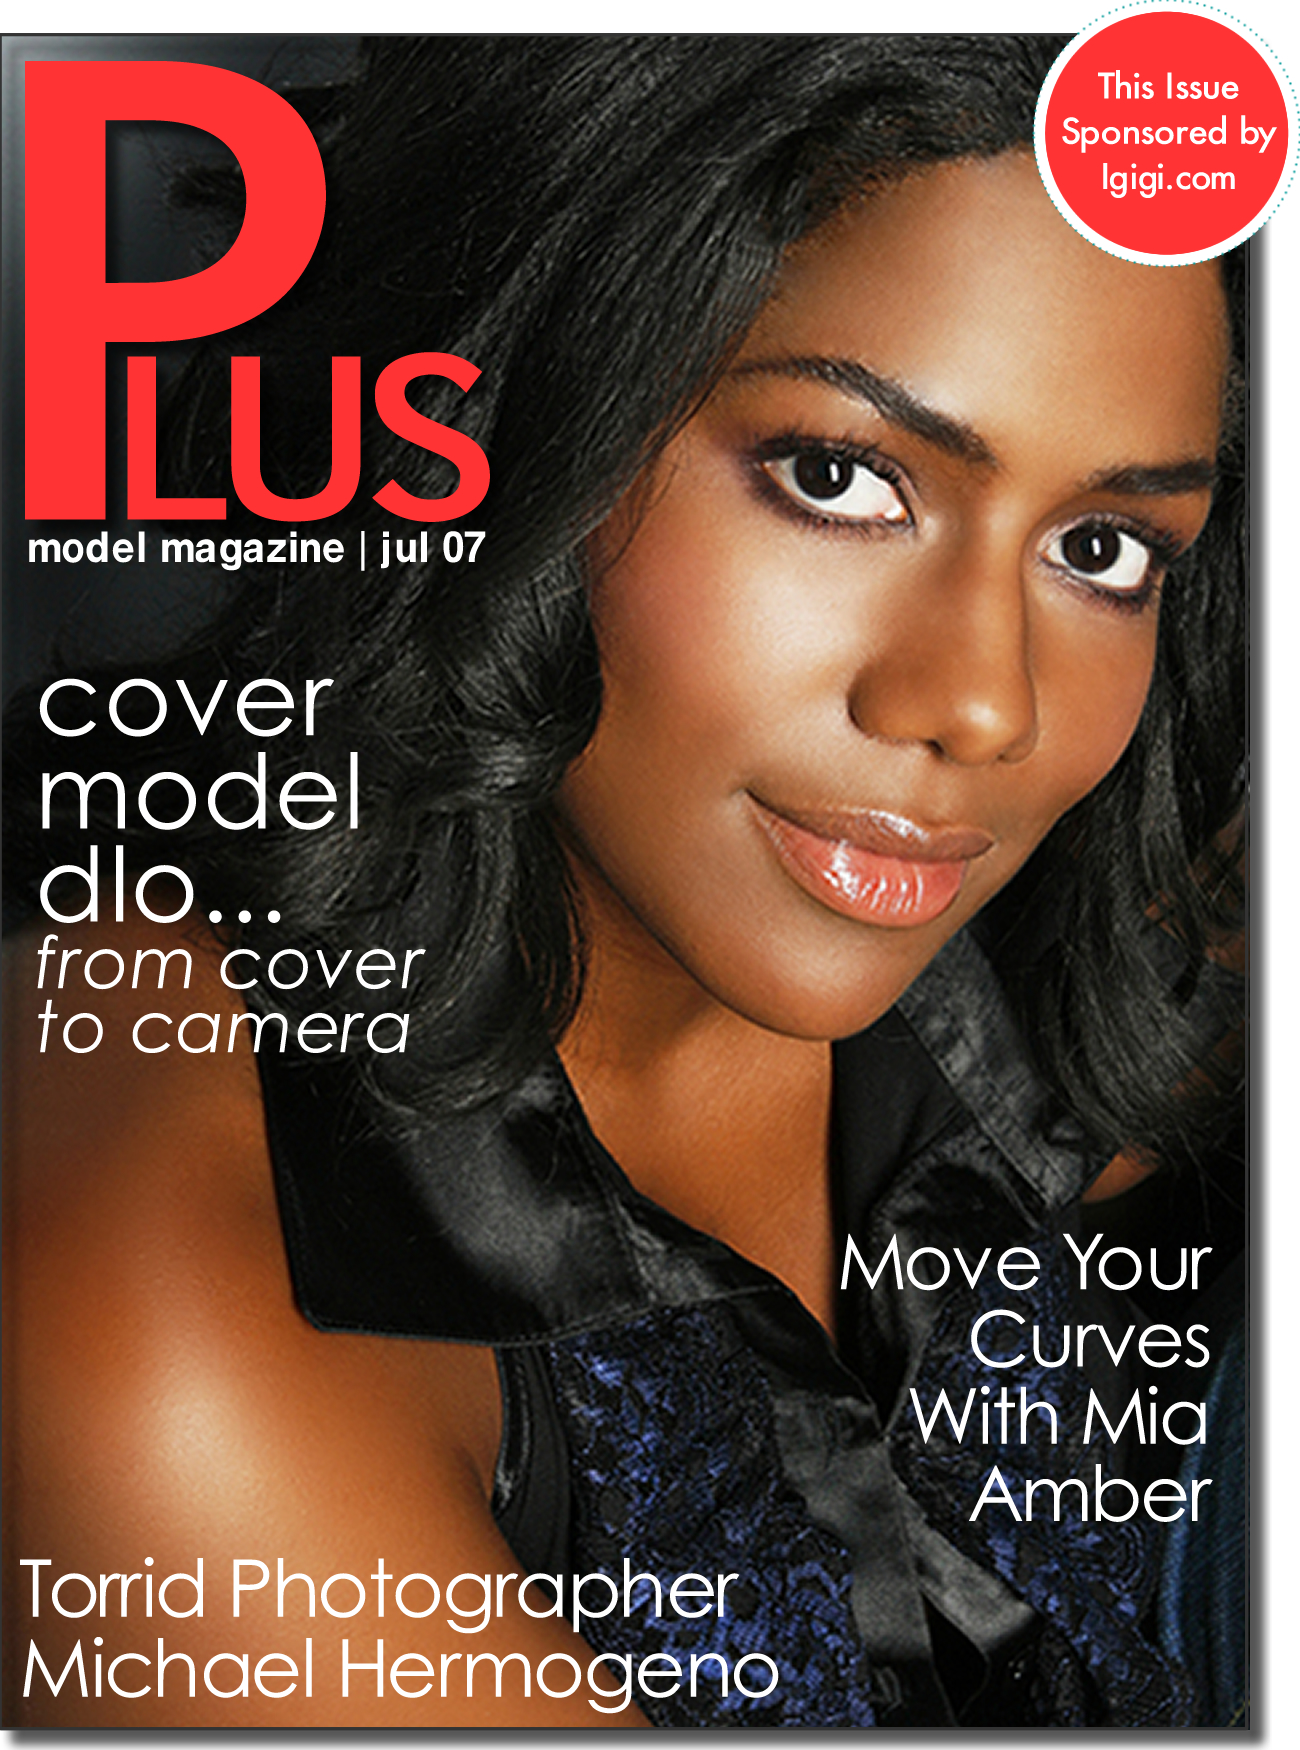 Model Magazines List: Birthday Wishes For Curvy Plus Size Modeling Magazine